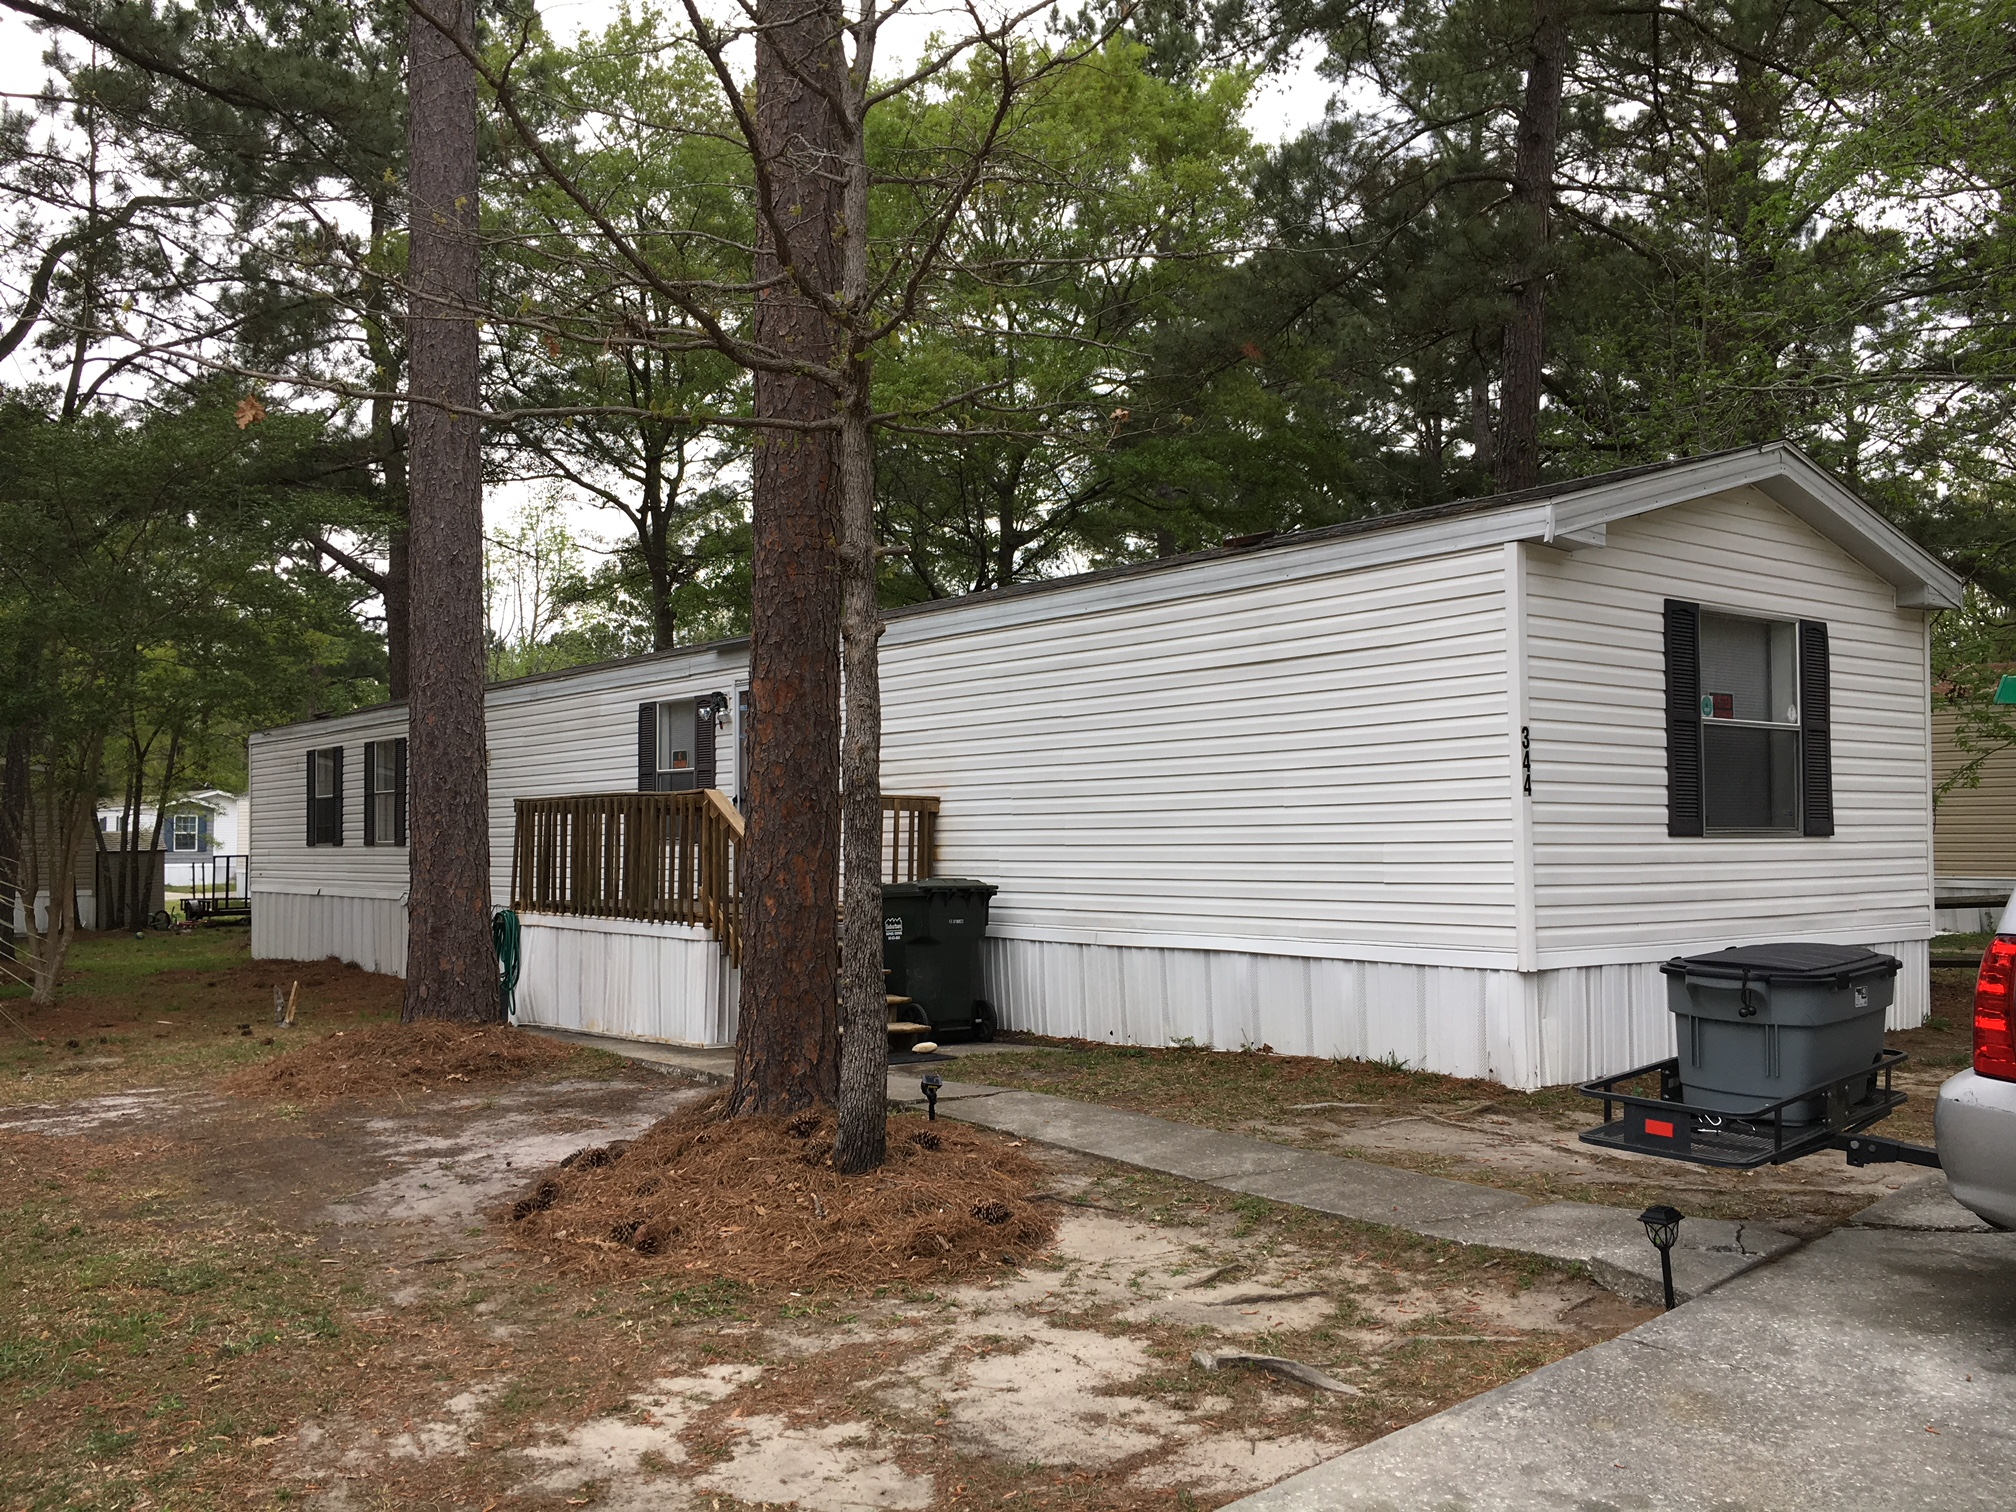 Summerville Mobile Homes Buy OR Rent to Own 4bd -3bd 2b on houses under section 8, houses for sales in magodo, houses 4 rent san diego, houses in florida, houses rent private landlords, houses in india, houses under 100 000 dollars, houses built on a rock island, houses rent houston, houses rent to own, houses 20 bedrooms 5 bath, houses in louisiana plantation, houses on sale in los angeles ca, houses in the philippines, houses rent section 8 approved, houses in pencil, houses rent section 8 list, houses with 10 bedrooms, houses in evansville, houses used in tv shows,